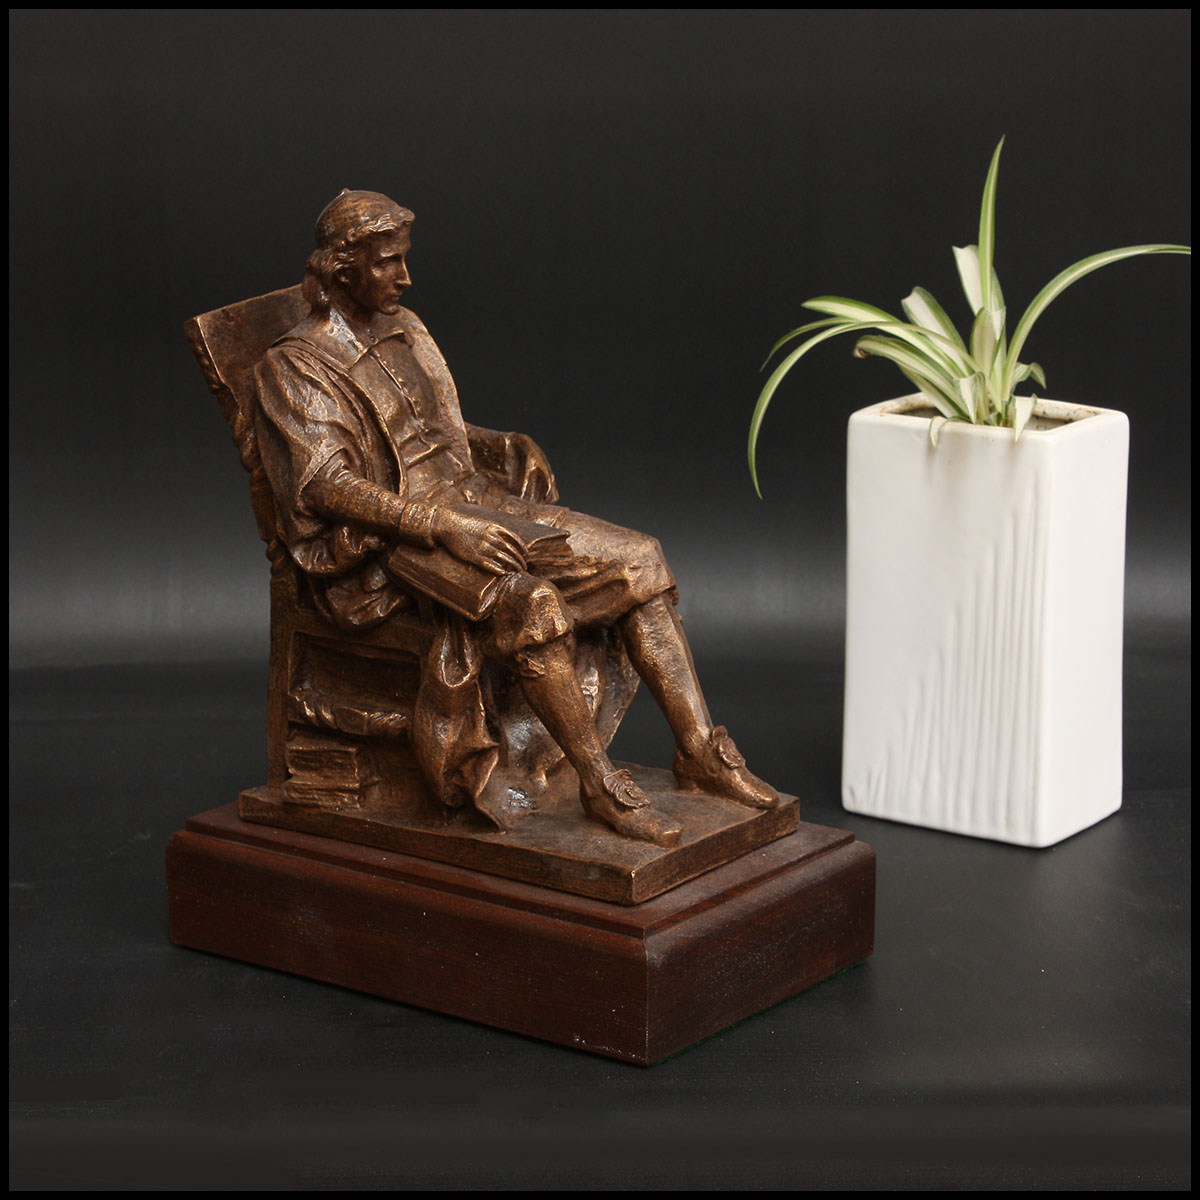 photo of bronze-colored sculpture of John Harvard seated in a chair atop a wood base beside a white vase with a plant